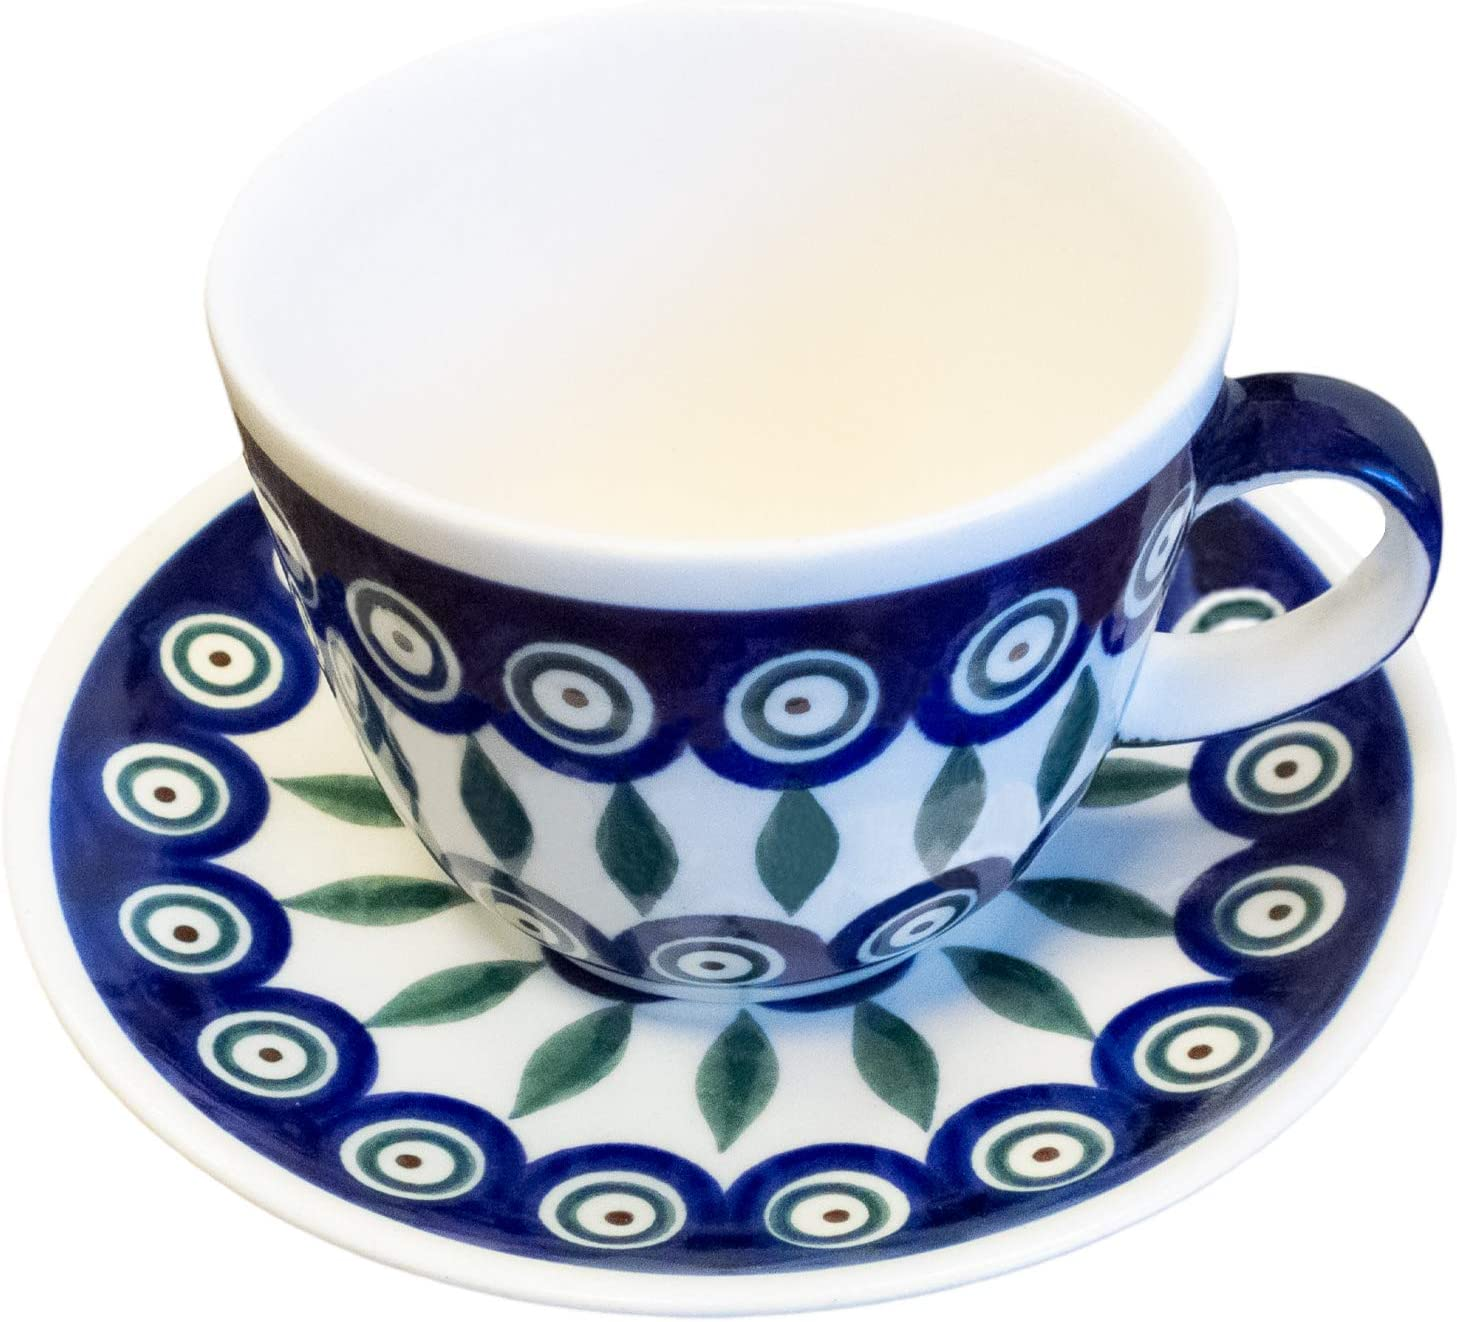 Bunzlauer Keramik Polish Pottery Teacup Coffee Cup with a Saucer Traditional Ceramics from Boleslawiec 100/% Original Item Handcrafted in Poland 200 ml Capacity